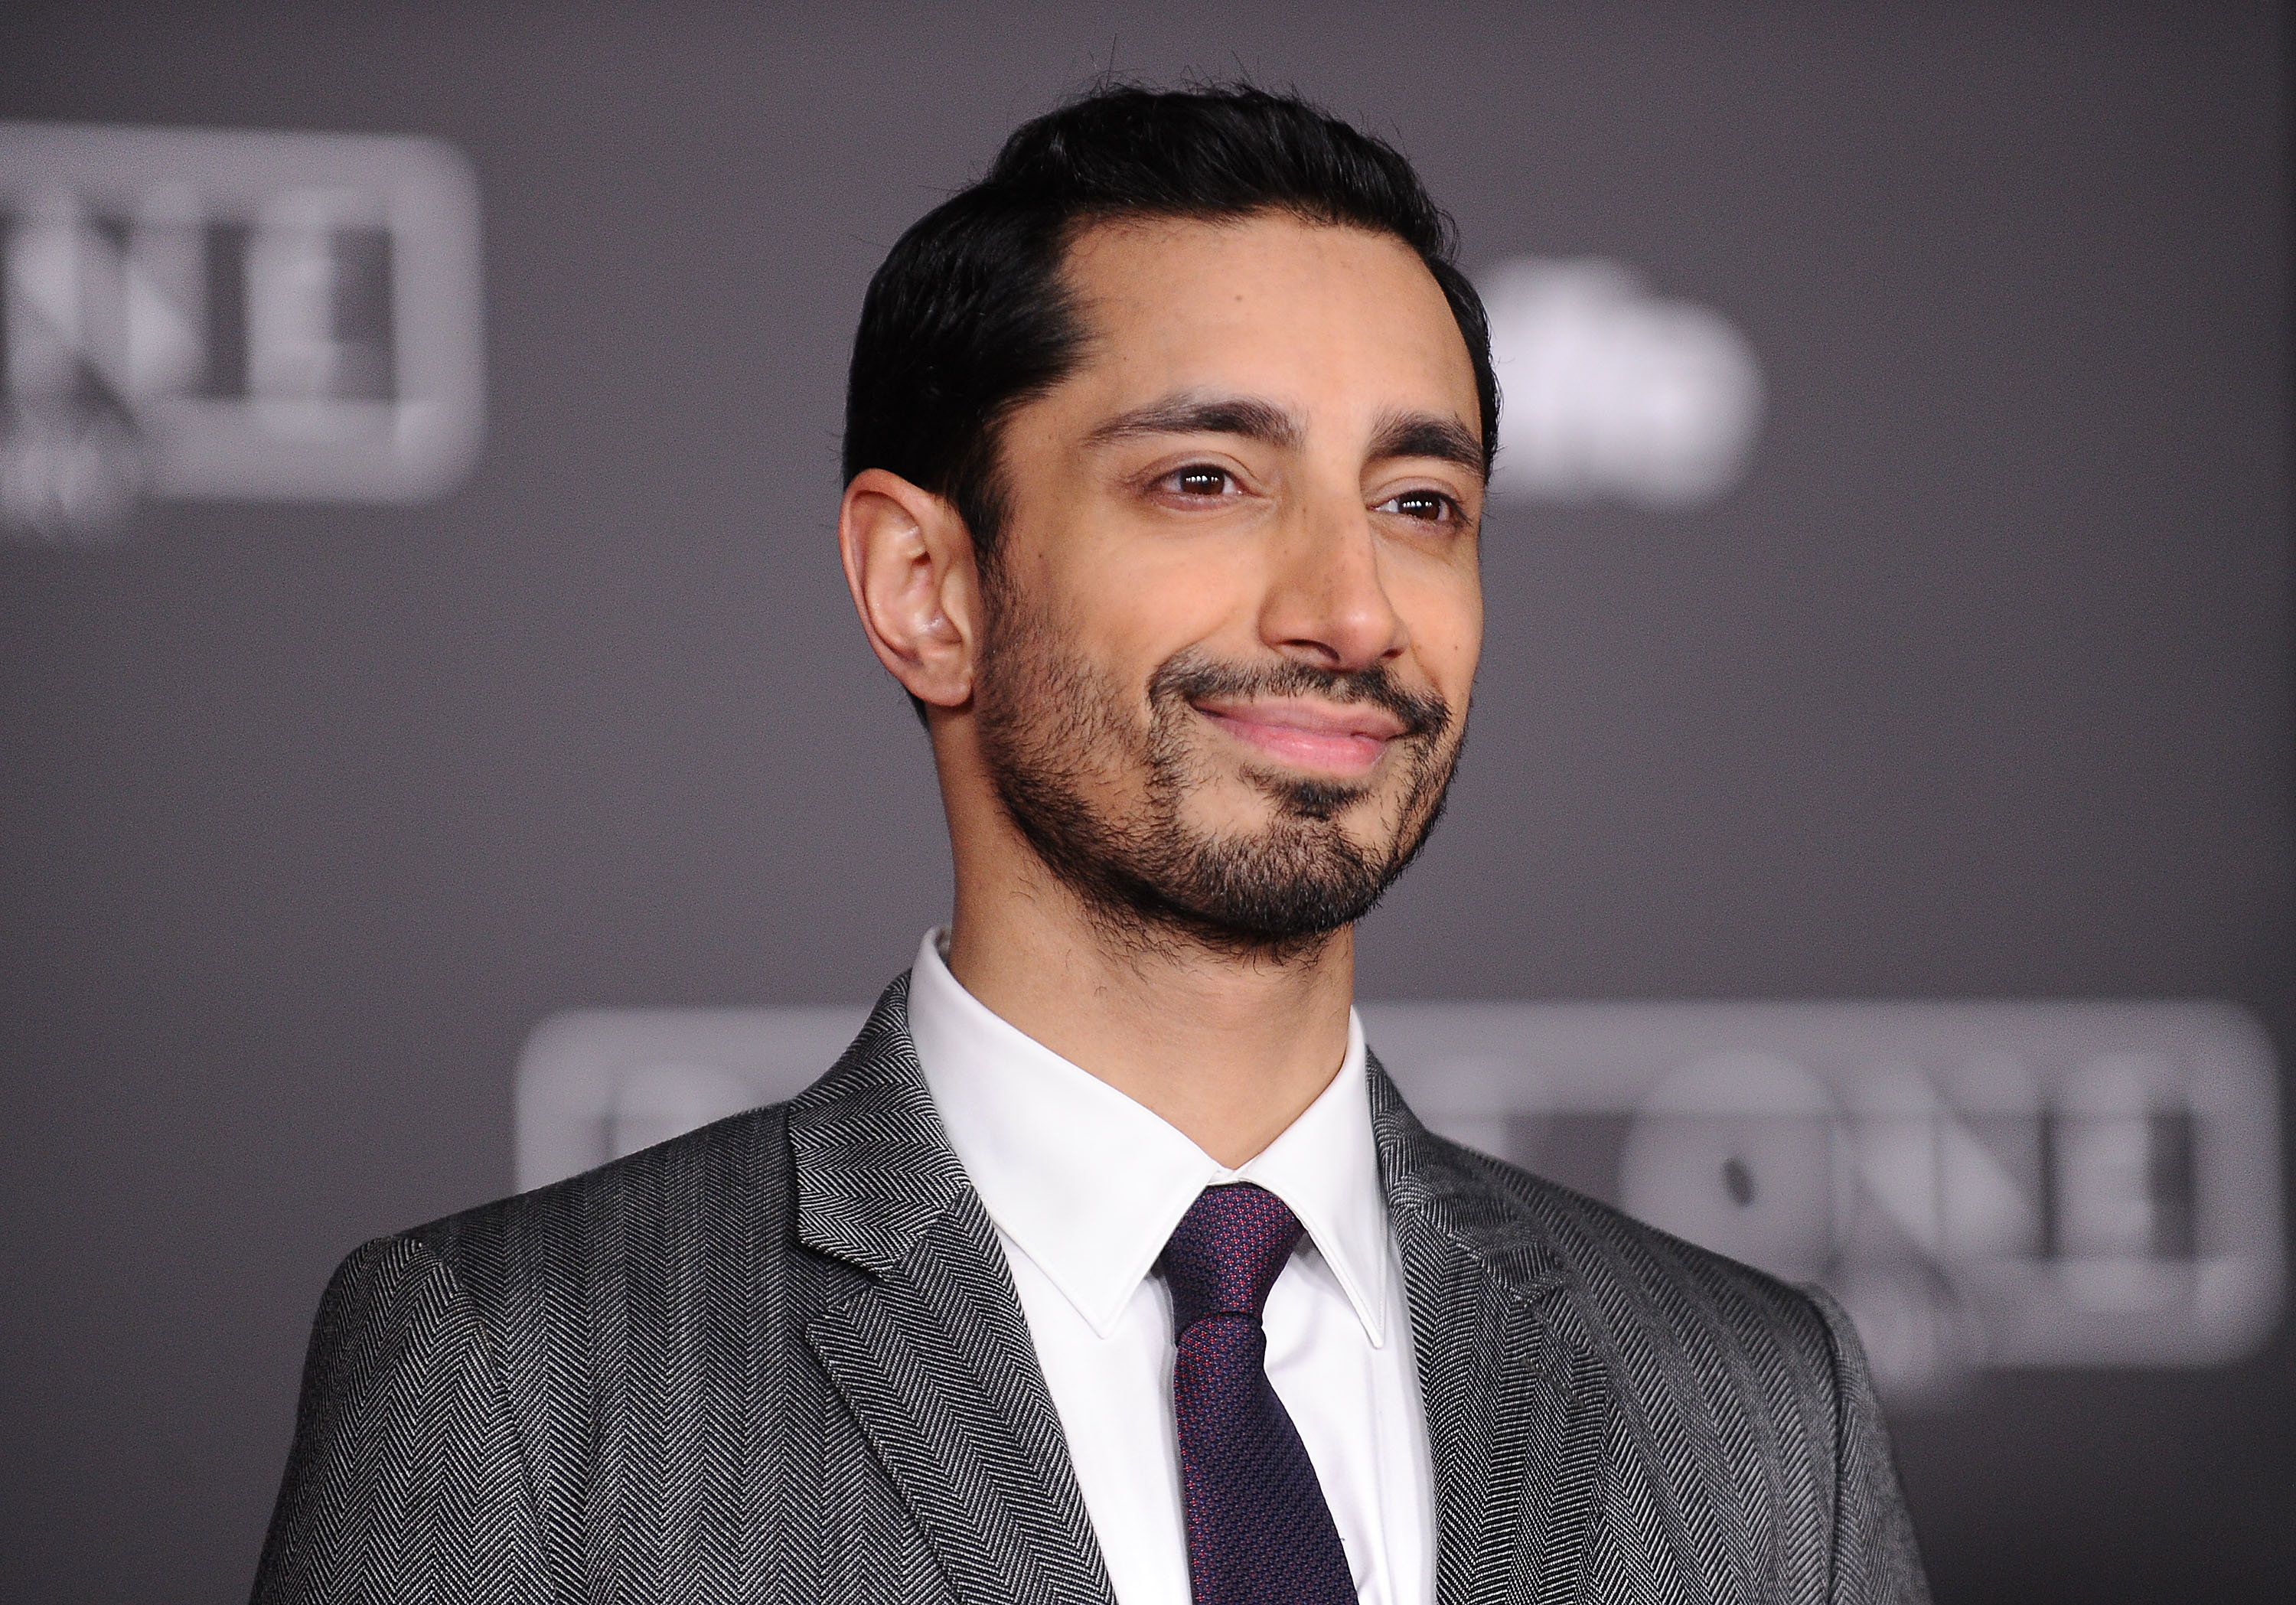 HOLLYWOOD, CA - DECEMBER 10:  Actor Riz Ahmed attends the premiere of 'Rogue One: A Star Wars Story' at the Pantages Theatre on December 10, 2016 in Hollywood, California.  (Photo by Jason LaVeris/FilmMagic)